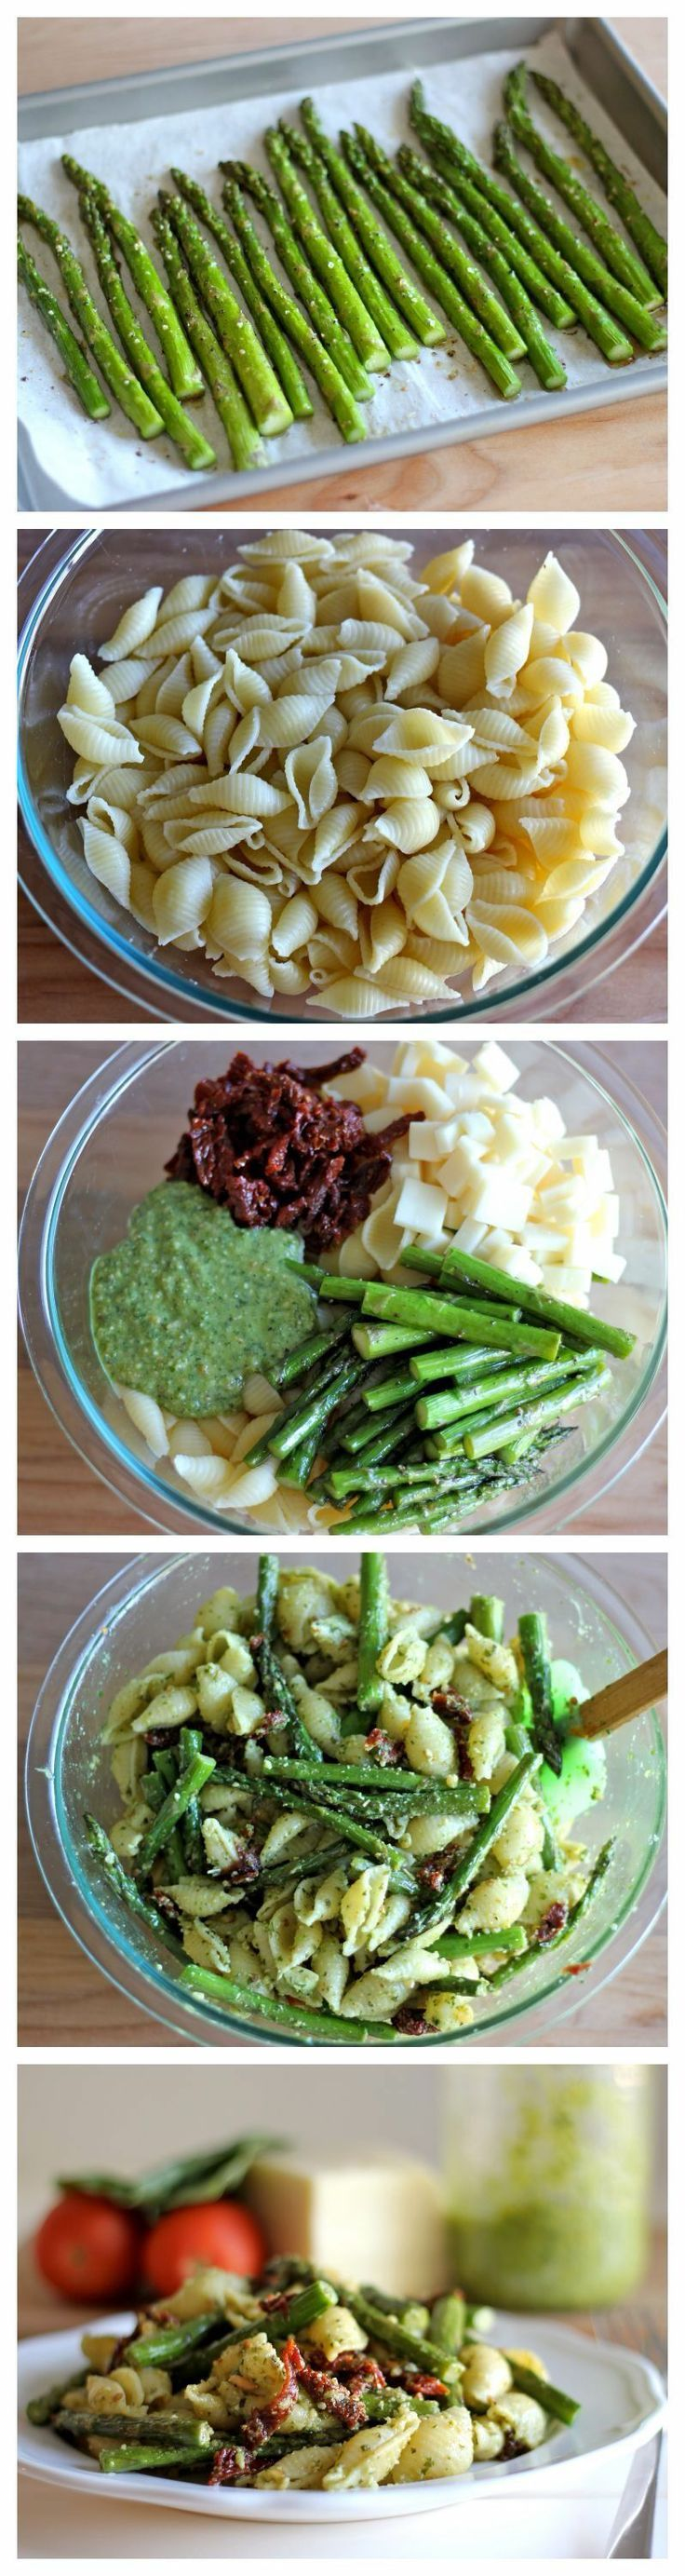 Pesto Pasta with Sun Dried Tomatoes and Roasted Asparagus   (I'd replace egg and cheese to make vegan!)